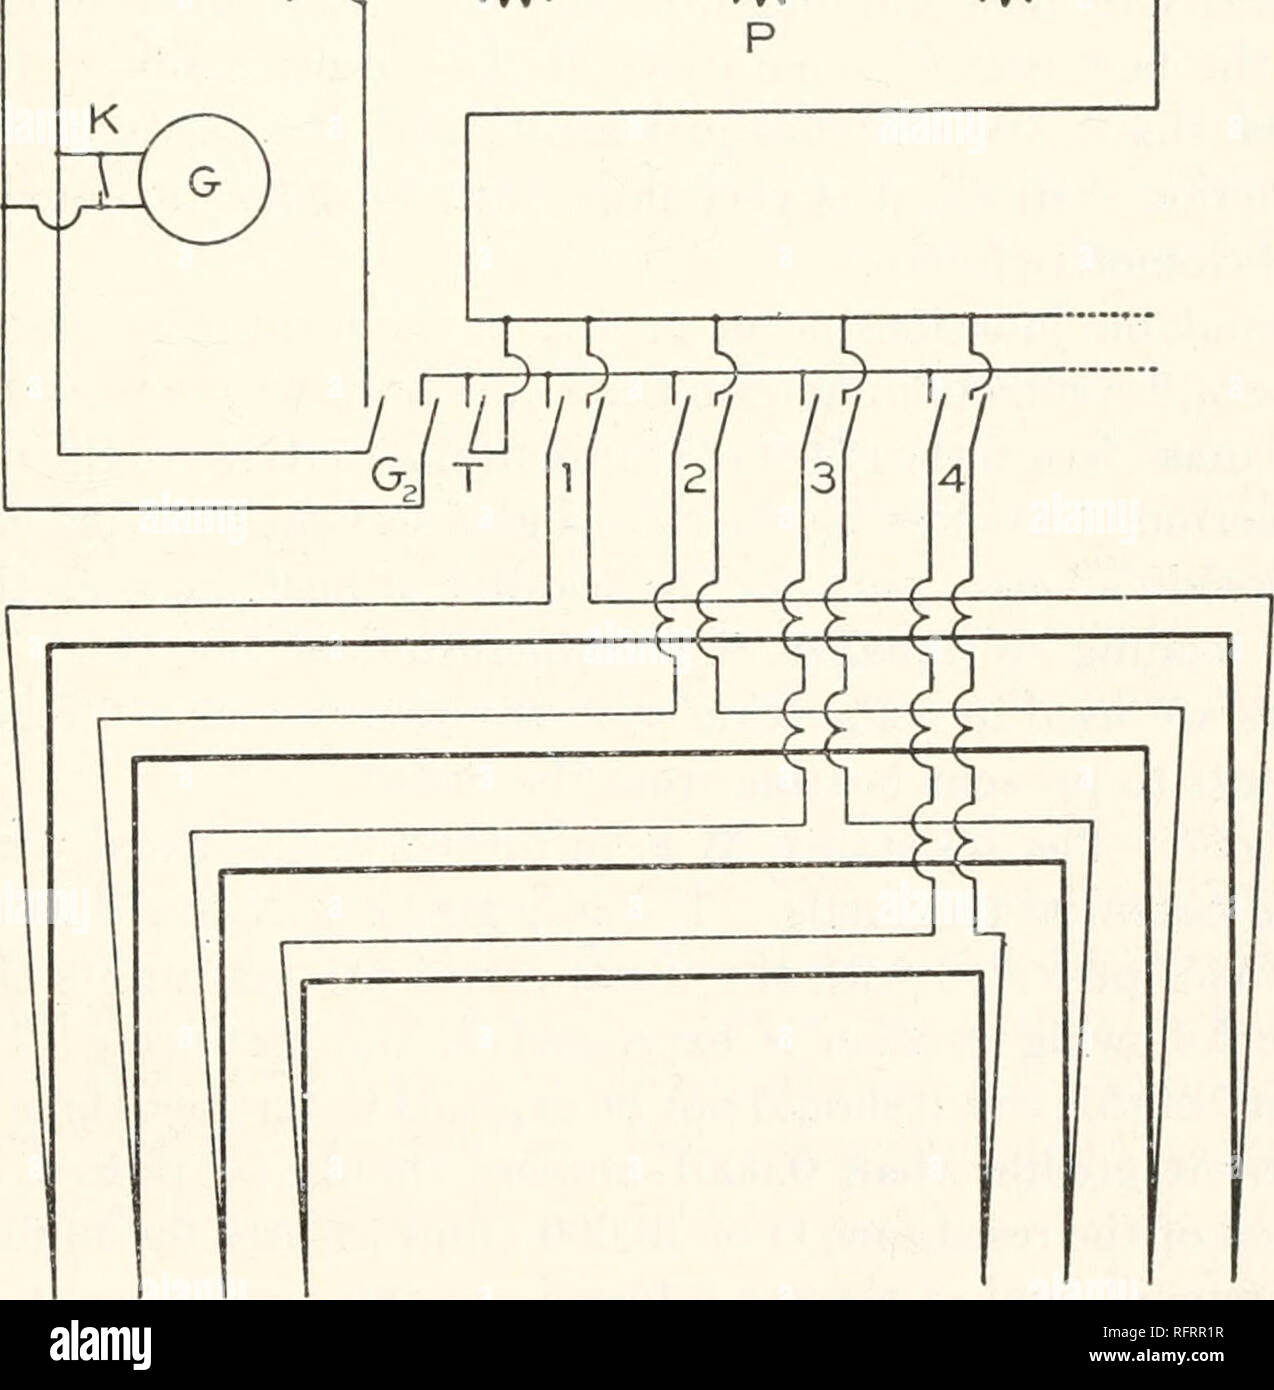 carnegie institution of washington publication  vwwwvwwv r  /vwwwvw aaa  ks ^7% -^h ^s^ f¥s ri^^ ~k£f k^  body oven fig  2  complete wiring diagram  of